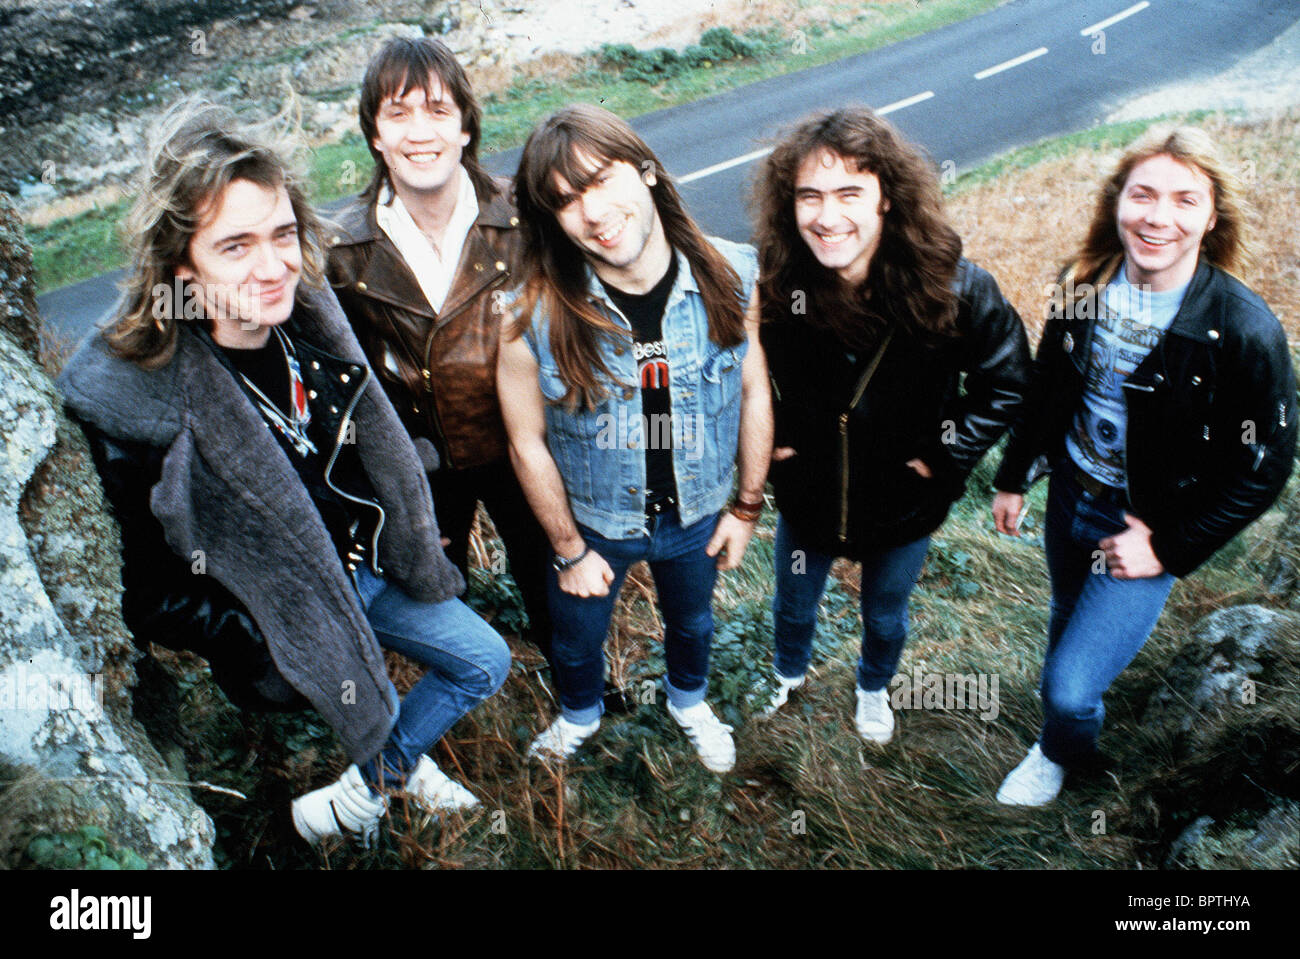 iron maiden pop group 1983 stock photo royalty free image 31273742 alamy. Black Bedroom Furniture Sets. Home Design Ideas